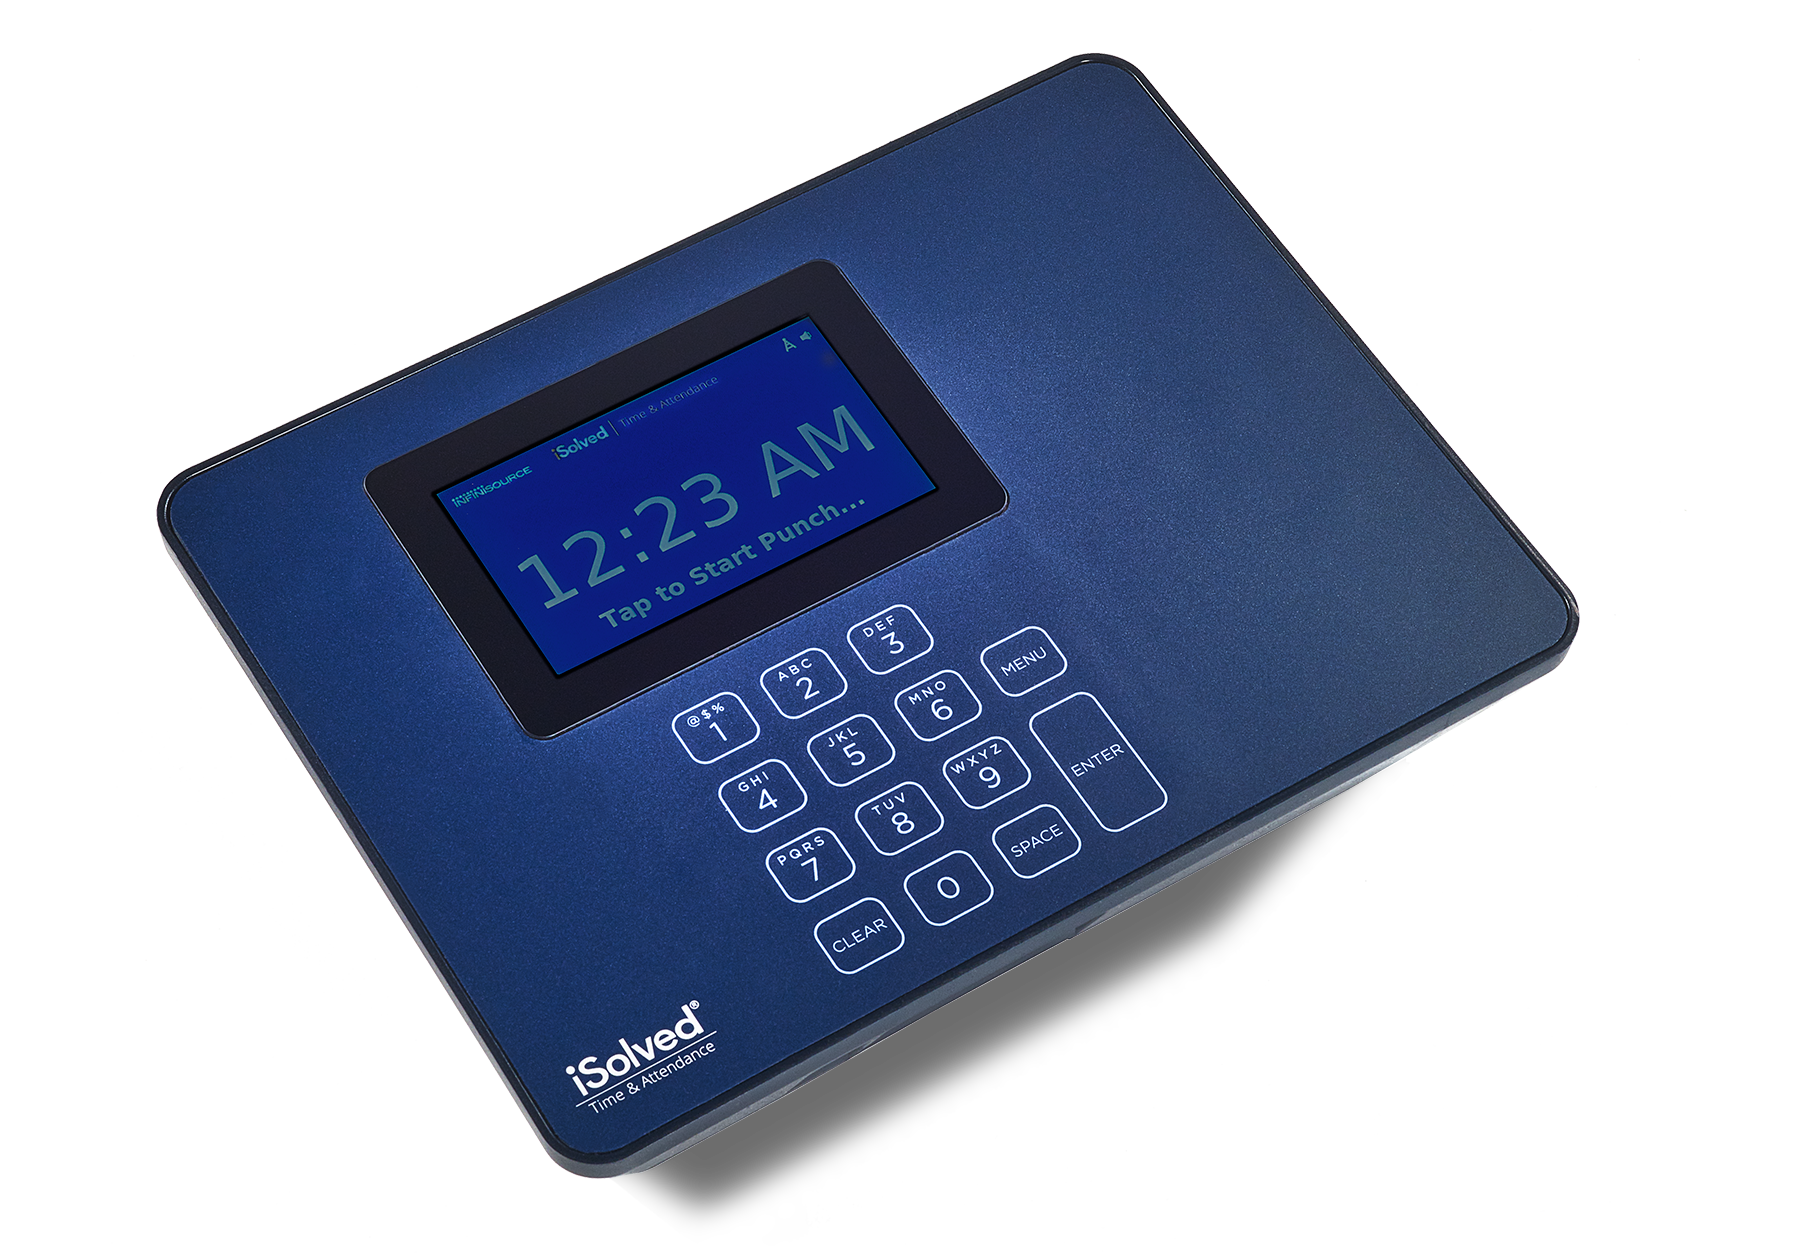 Physical Time Clocks for Tracking Workplace Time - iSolved Time